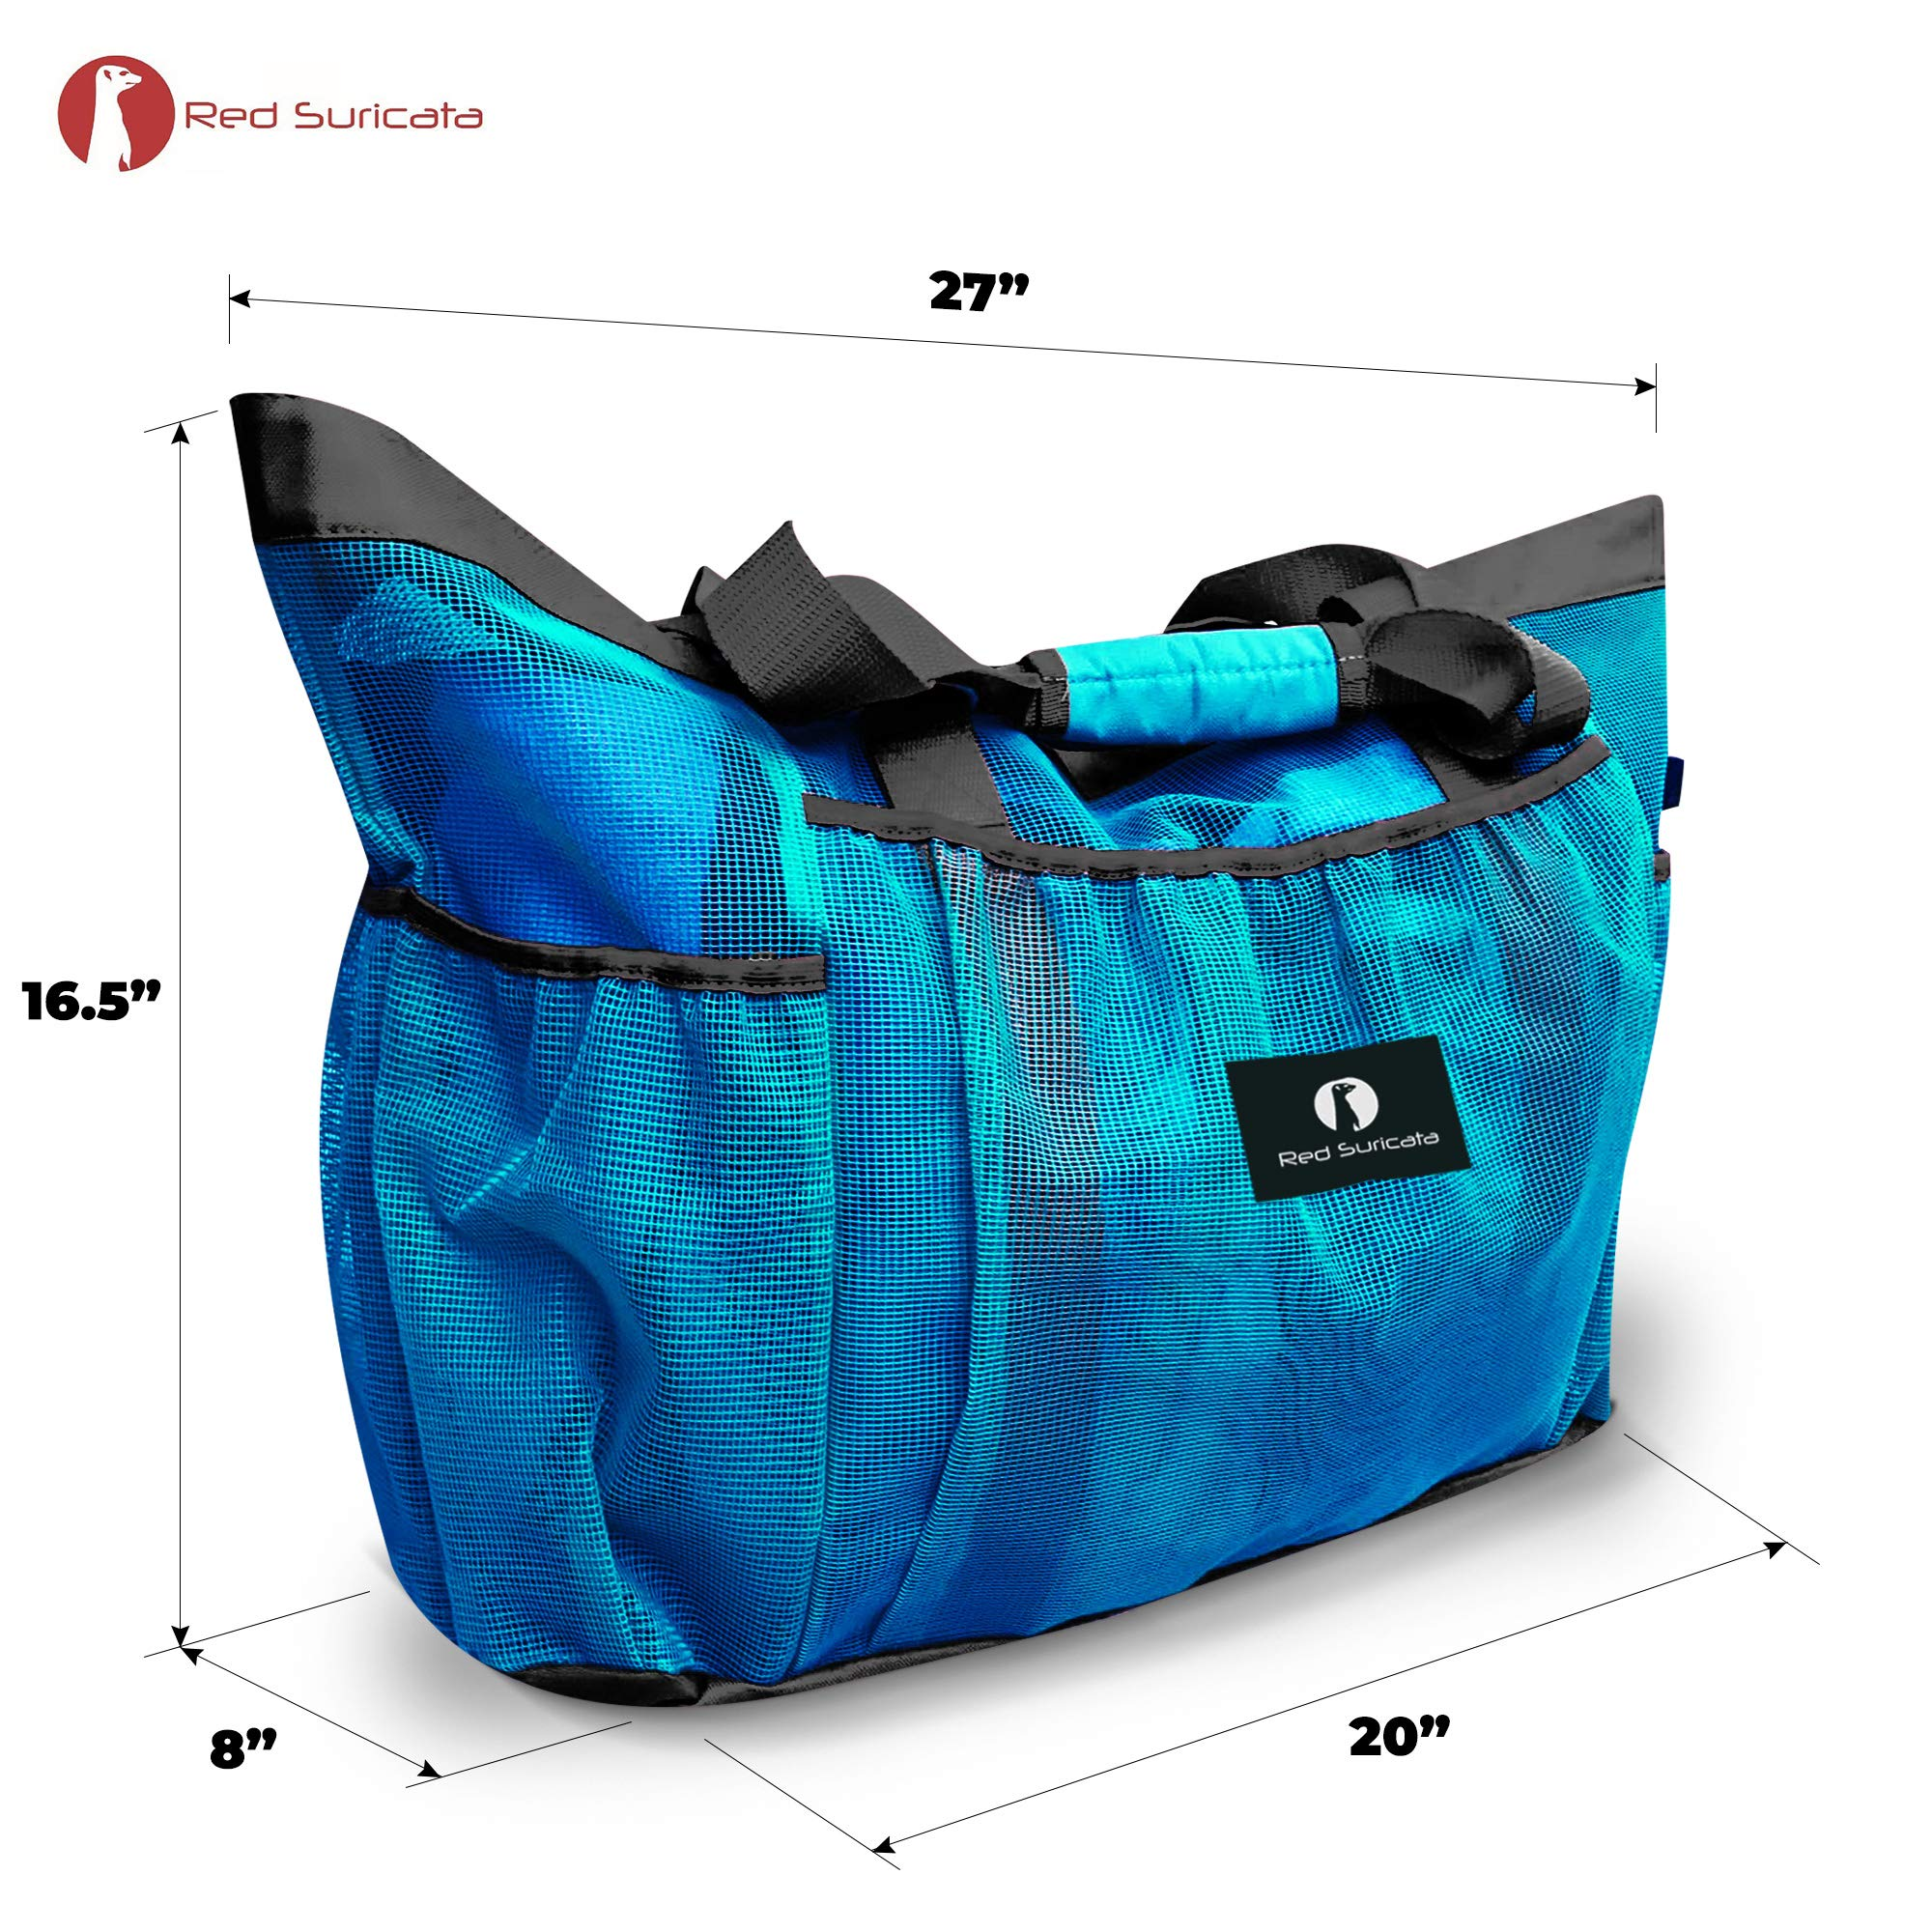 Red Suricata Large Mesh Beach Bag - Mesh Beach Tote Bag with Pockets - Beach Bags and Totes for Women with YKK Zipper & 7 Large Elastic Pockets for Beach Accessories & Beach Toys (Celeste Blue/Grey)